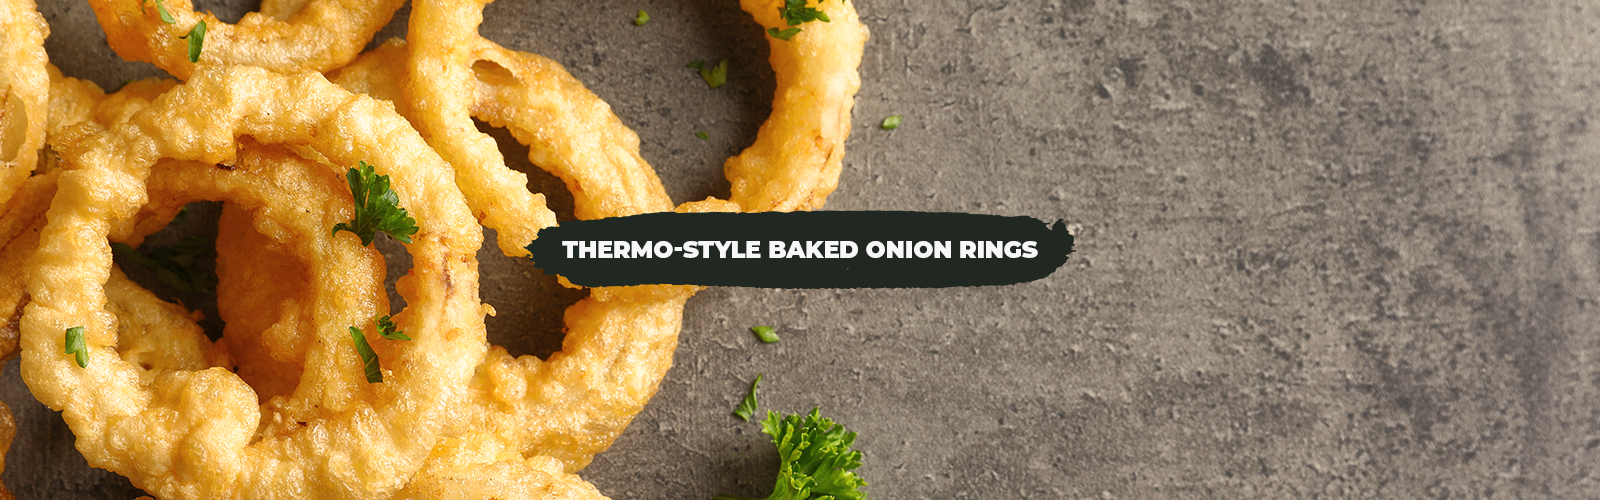 Thermo-Style Baked Onion Rings